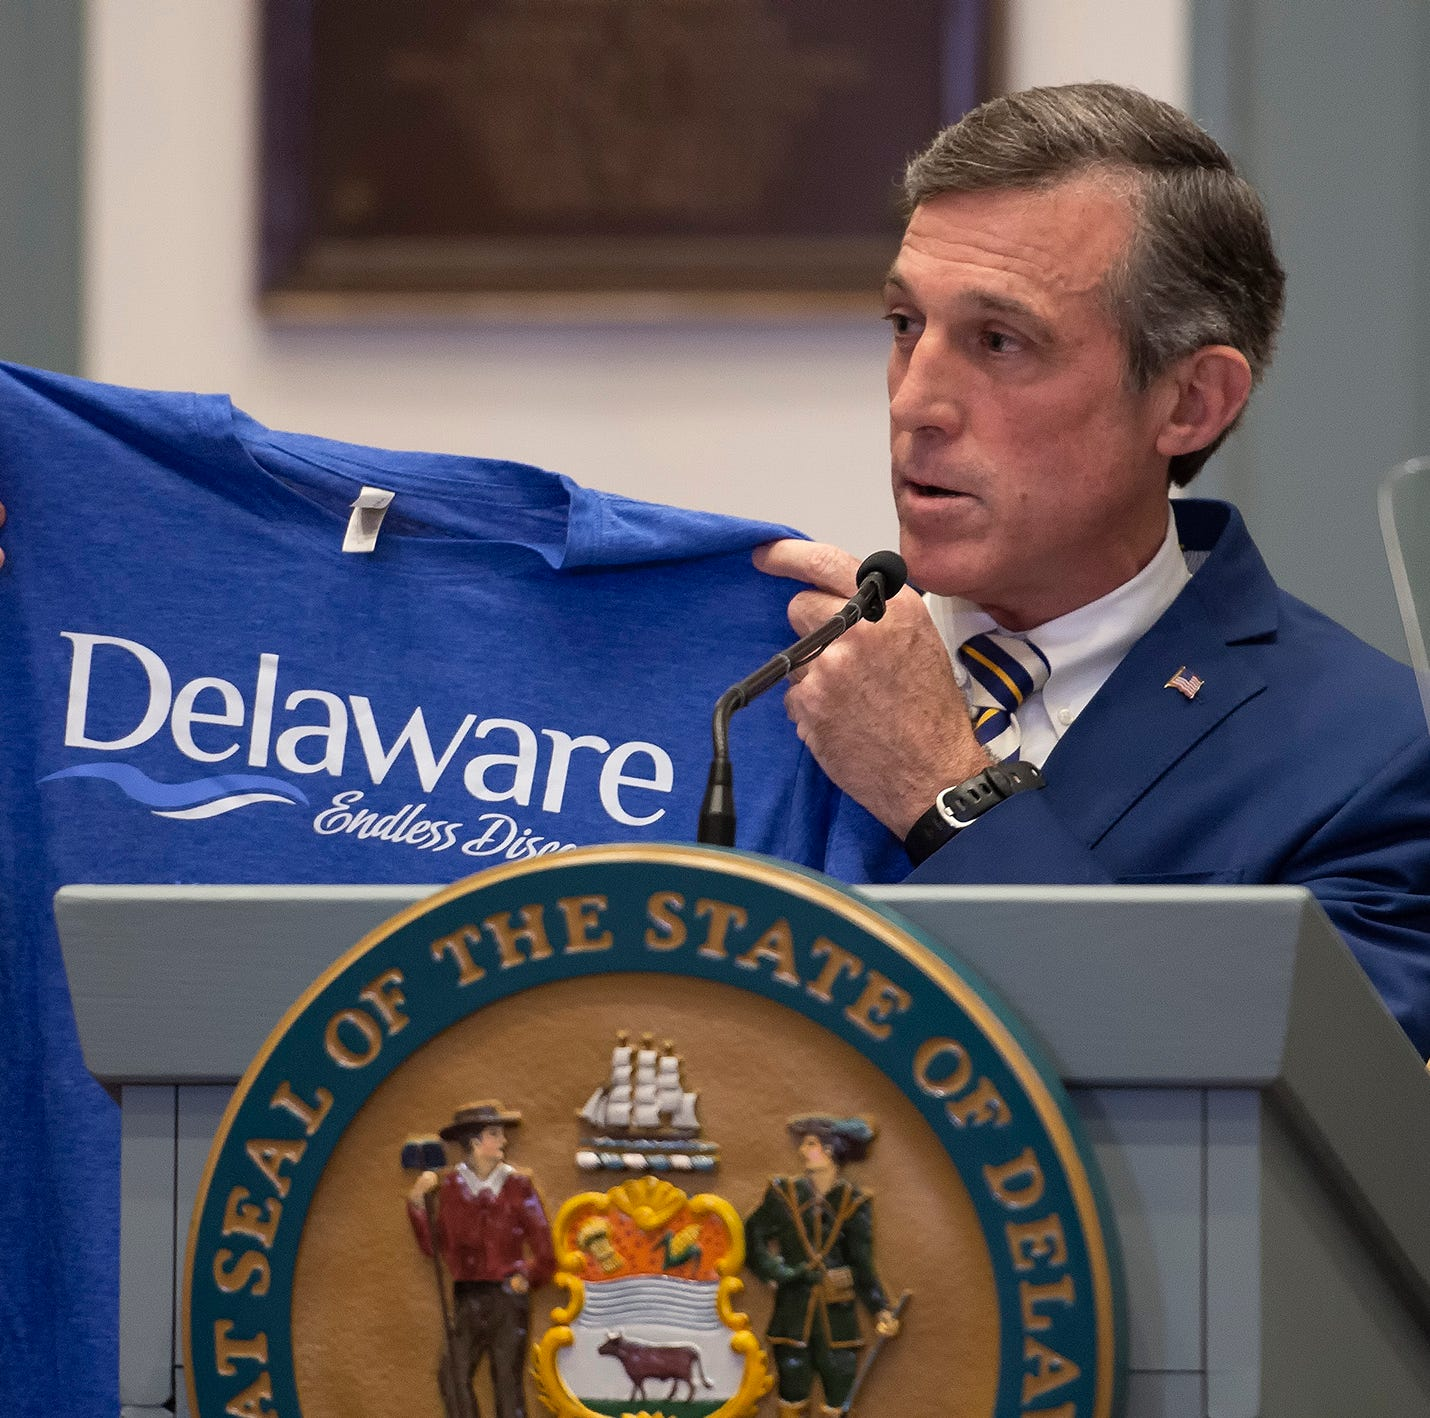 Ghost guns, a higher smoking age and other takeaways from Delaware's State of the State